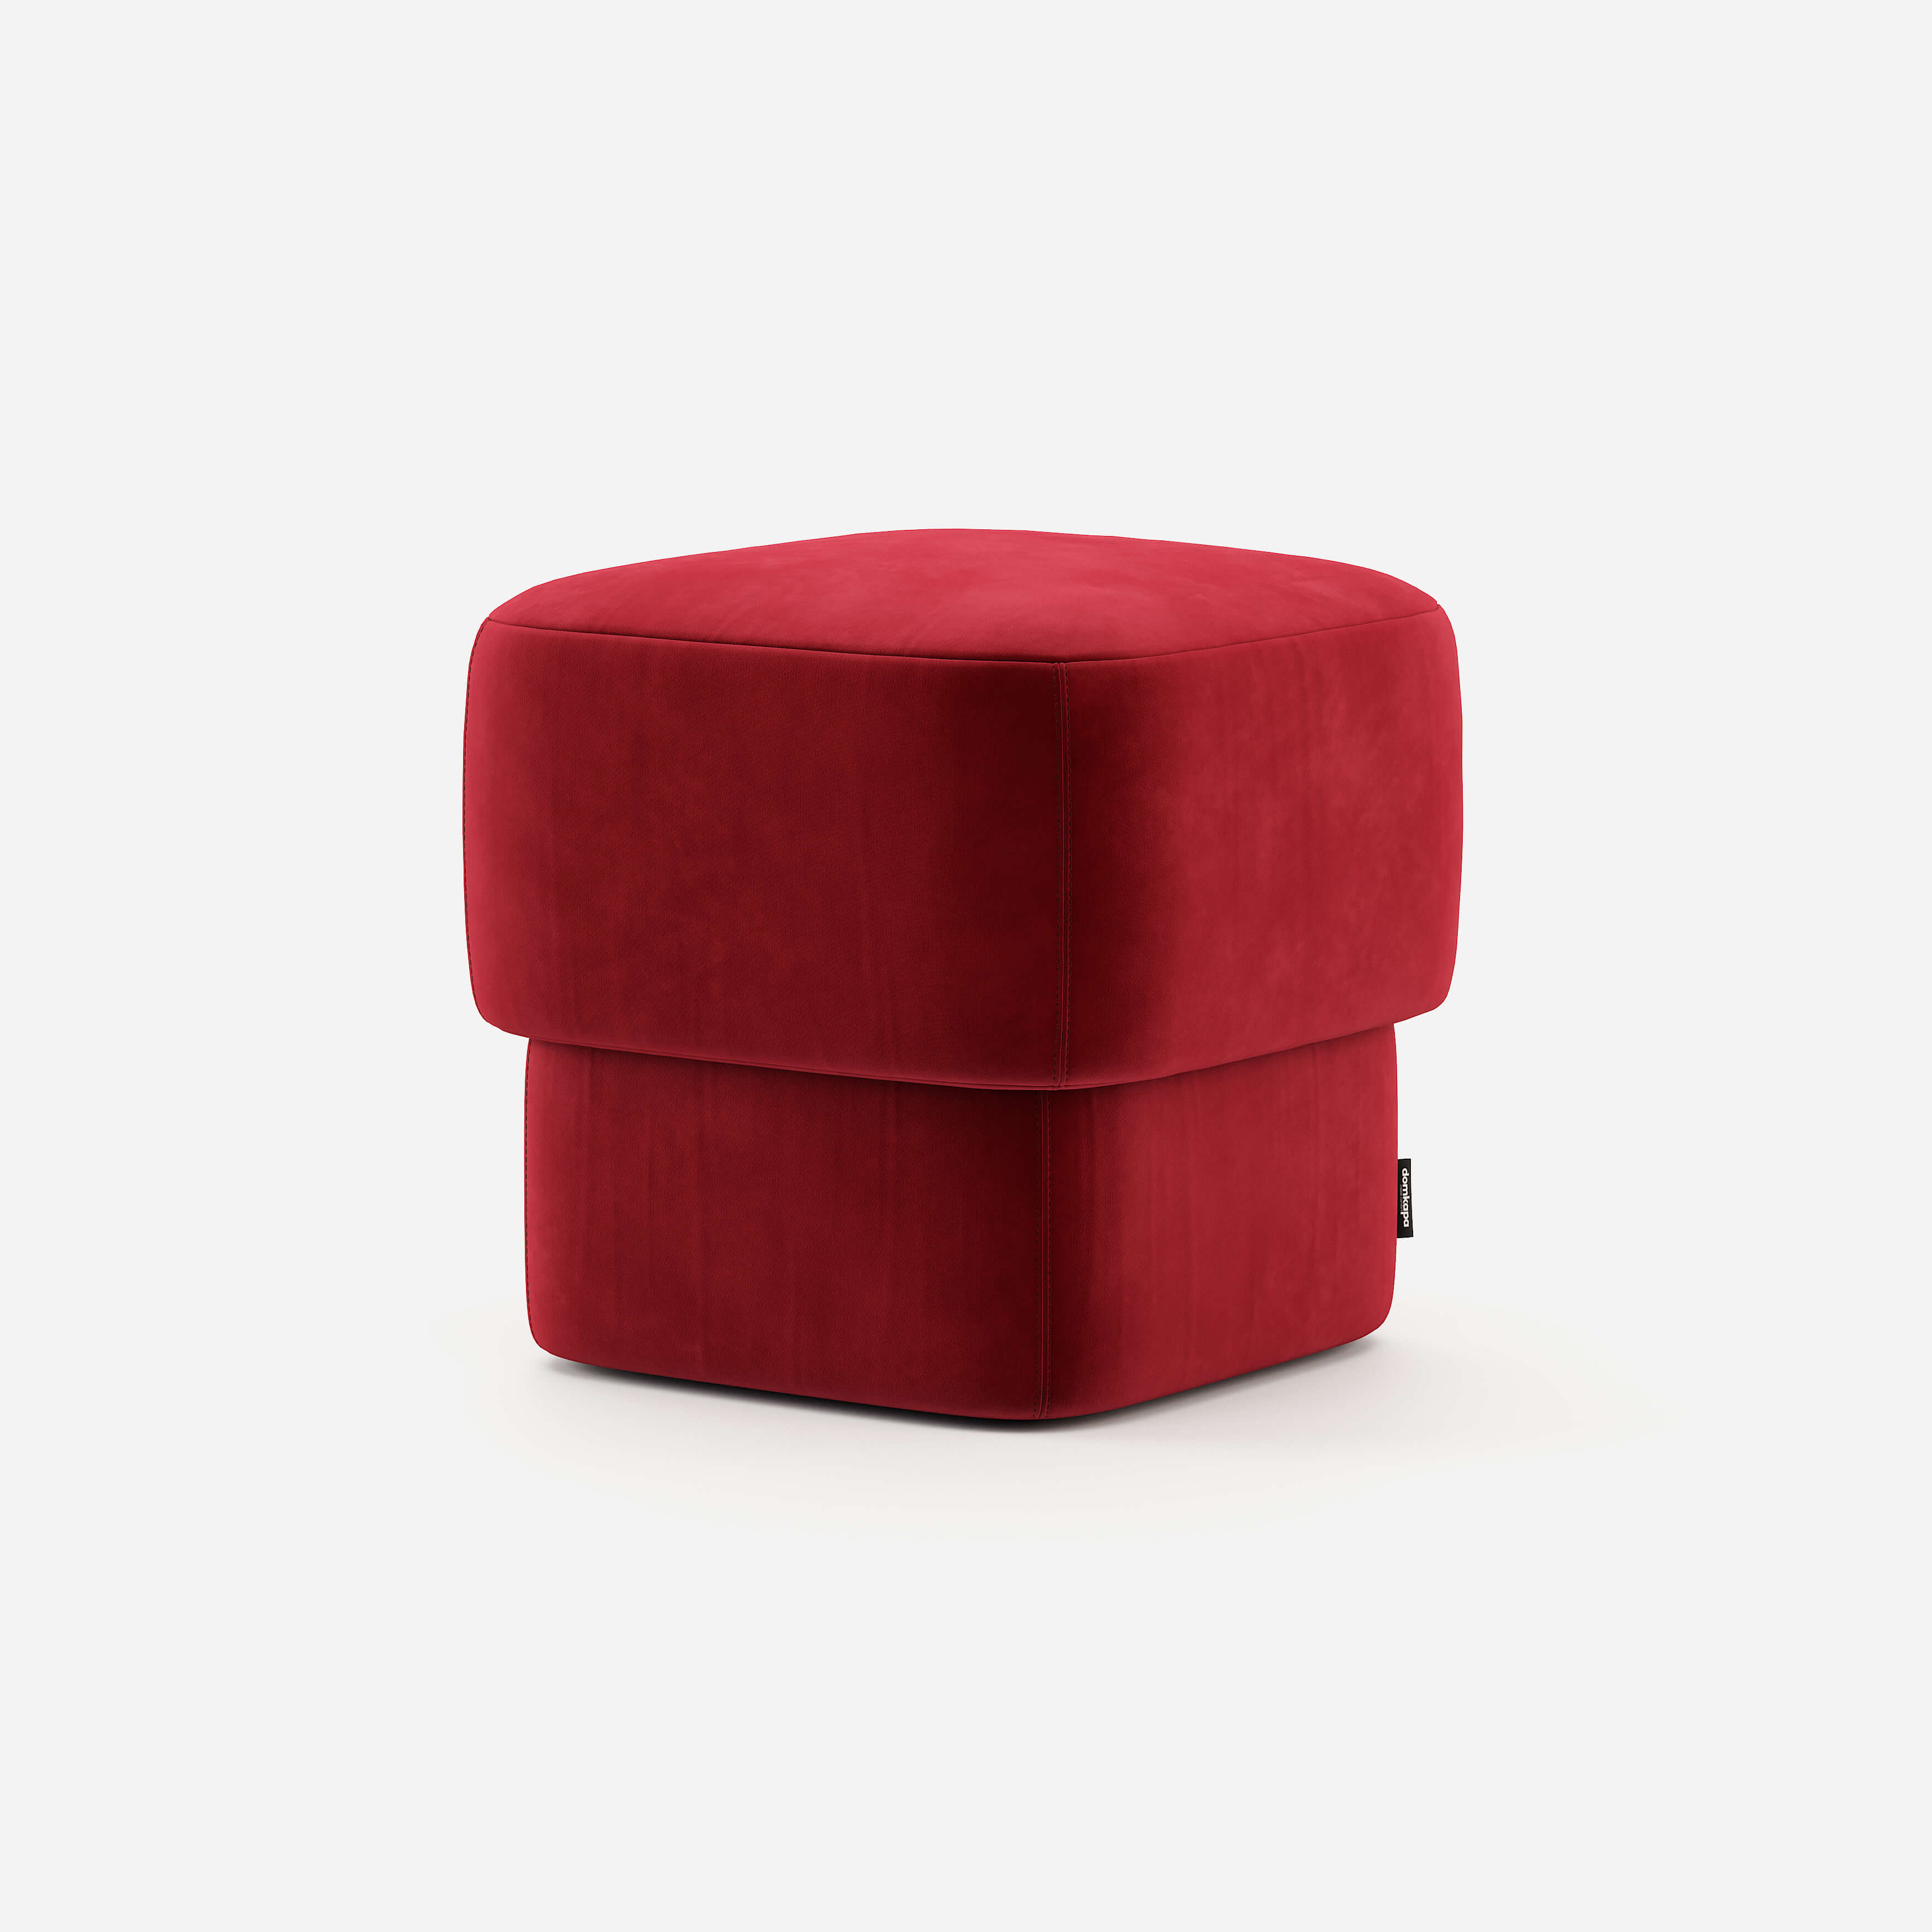 red-fever-kate-puff-pouf-rubi-domkapa-verlvet-fabrics-upholstered-furniture-interior-design-home-decor-living-room-1